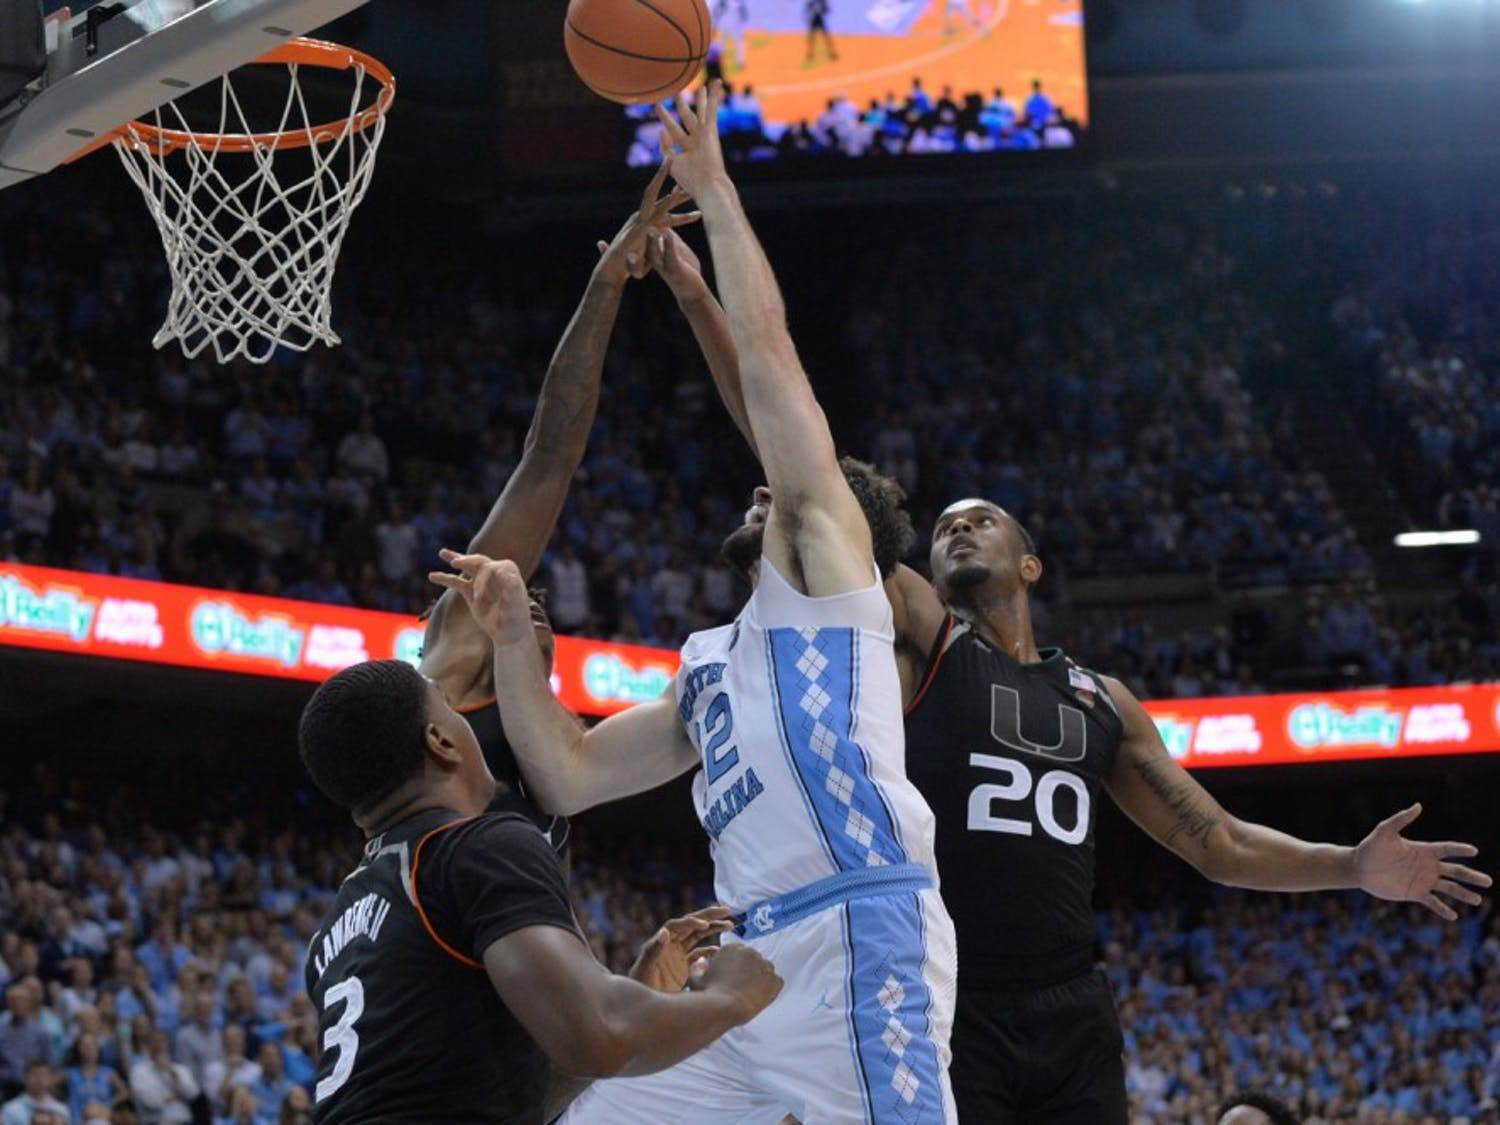 Junior forward Luke Maye (32) goes up for a shot between three Miami defenders on Feb. 27 at the Smith Center.